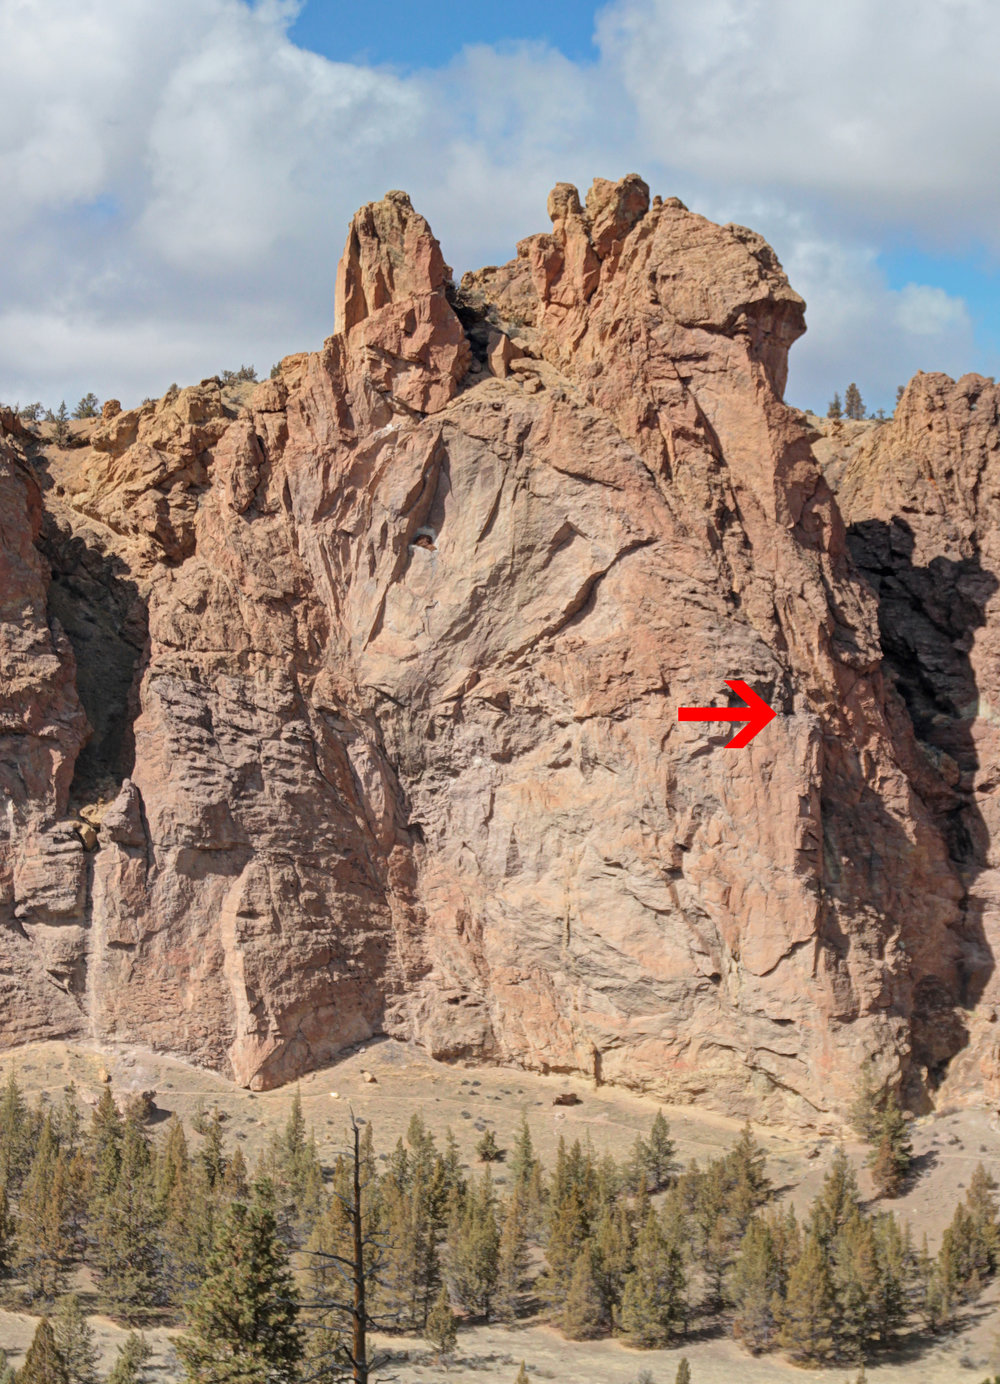 Golden eagle nest location overview on Little Three Fingered Jack. Photo courtesy of Steve Lay.